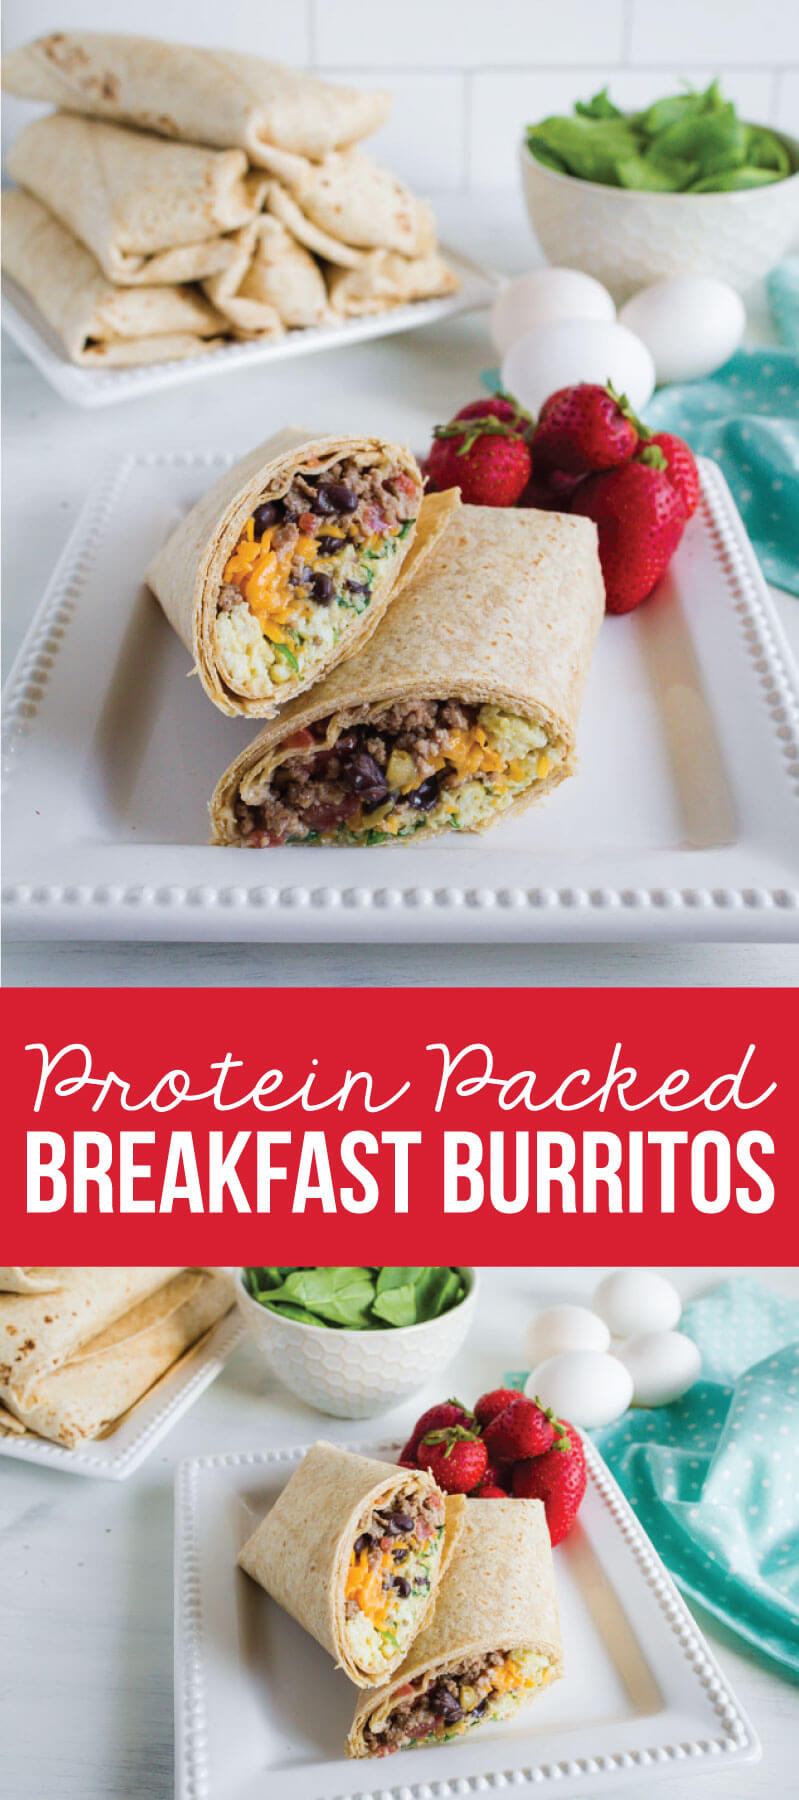 Protein Packed Breakfast Burritos - make these ahead to reheat throughout the week.  via www.thirtyhandmadedays.com